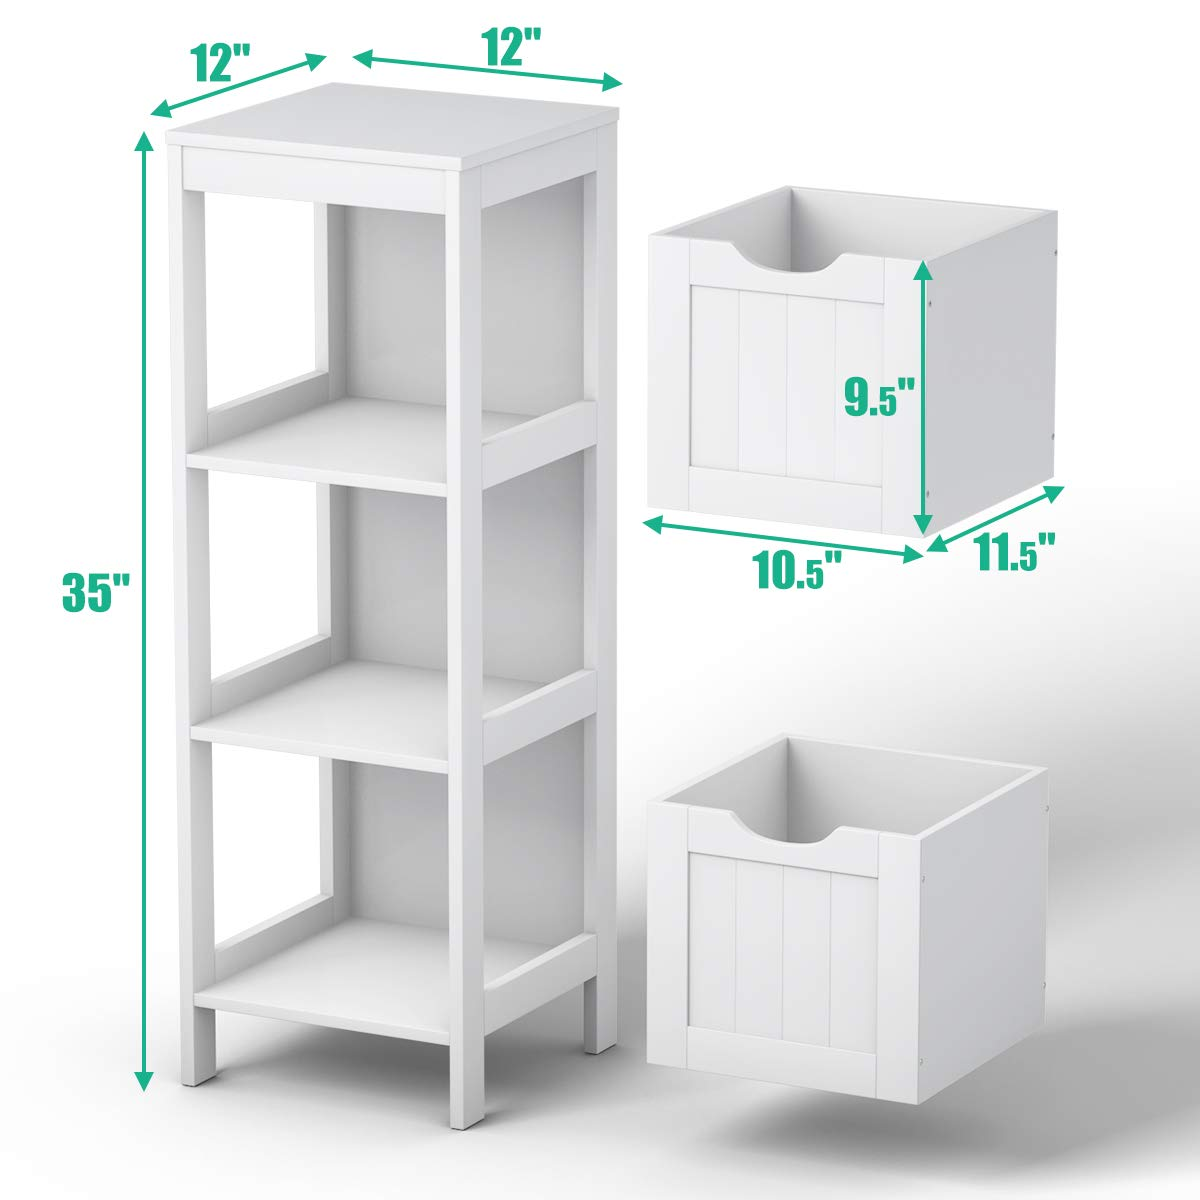 12 x 12 x 35 Tangkula Floor Cabinet Wooden Storage Cabinet for Home Office Living Room Bathroom Side Table Sturdy Modern Drawer Cabinet Organizer with 2 Drawers Bedroom Night Stand White